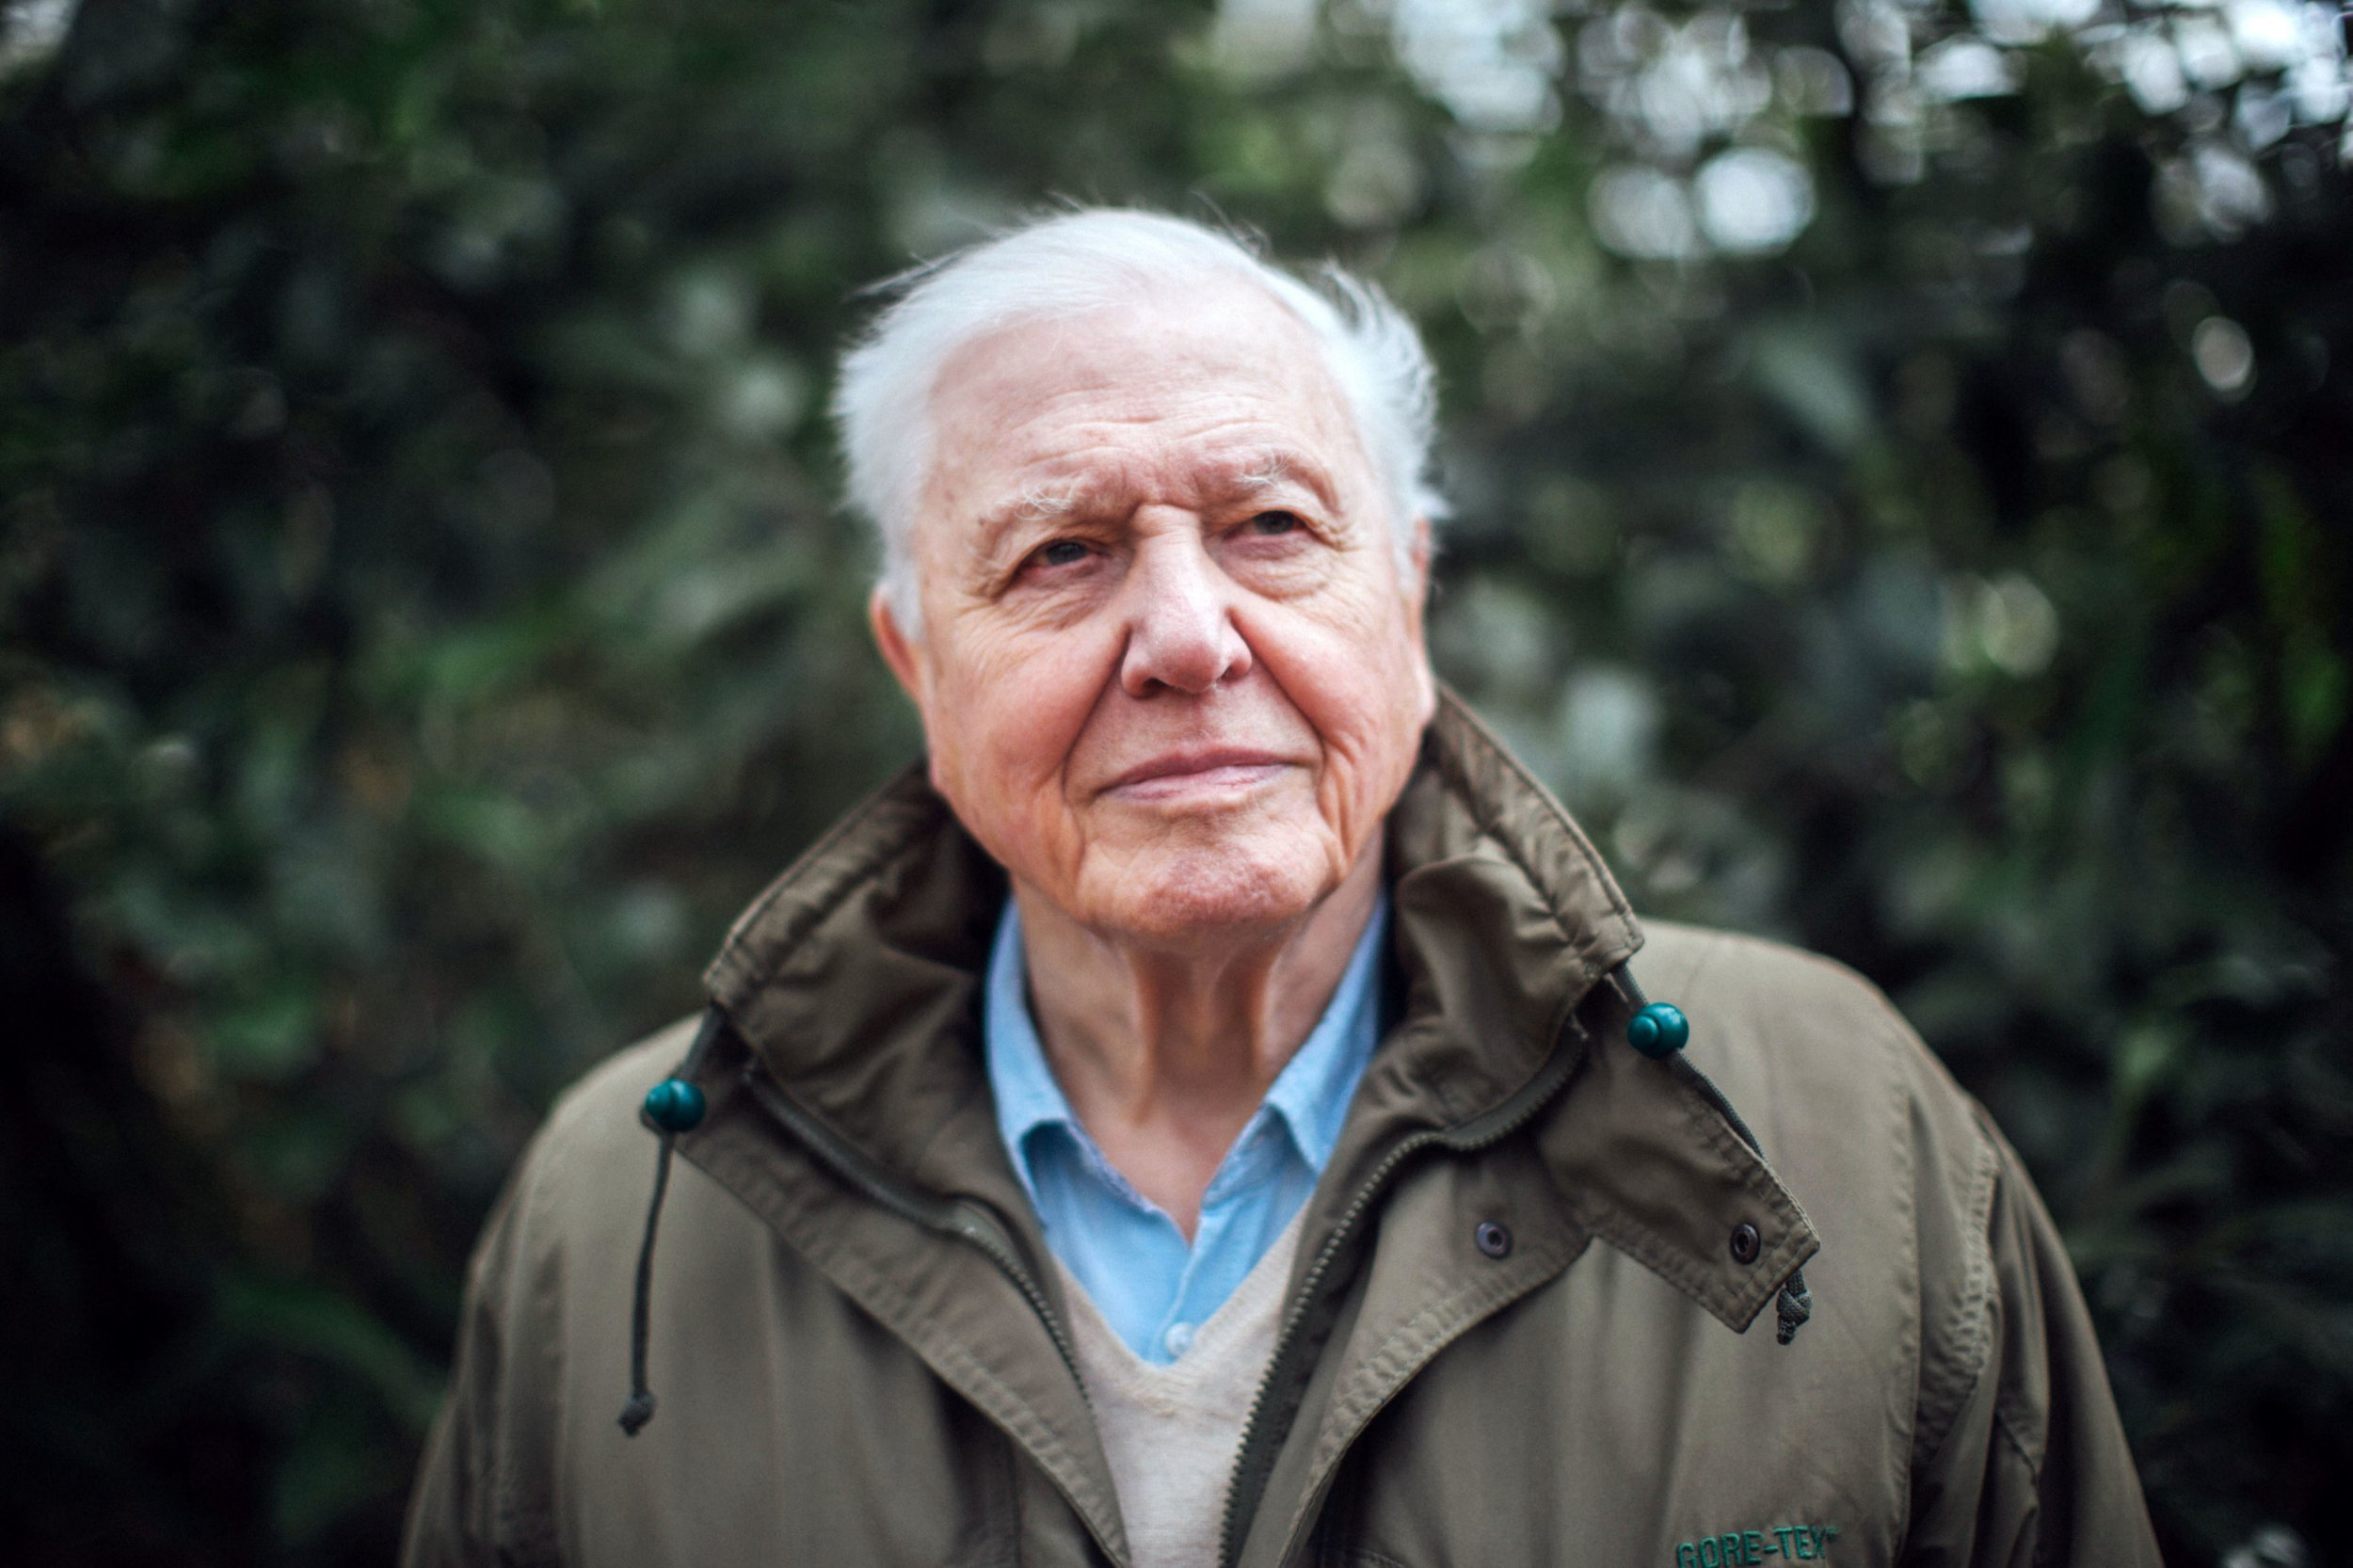 "For use in UK, Ireland or Benelux countries only Undated BBC handout photo of Sir David Attenborough, who will present an ""urgent"" new documentary film about climate change, looking at the potential threats to our planet and the possible solutions. PRESS ASSOCIATION Photo. Issue date: Saturday March 23, 2019. See PA story SHOWBIZ Attenborough. Photo credit should read: Polly Alderton/BBC/PA Wire NOTE TO EDITORS: Not for use more than 21 days after issue. You may use this picture without charge only for the purpose of publicising or reporting on current BBC programming, personnel or other BBC output or activity within 21 days of issue. Any use after that time MUST be cleared through BBC Picture Publicity. Please credit the image to the BBC and any named photographer or independent programme maker, as described in the caption."